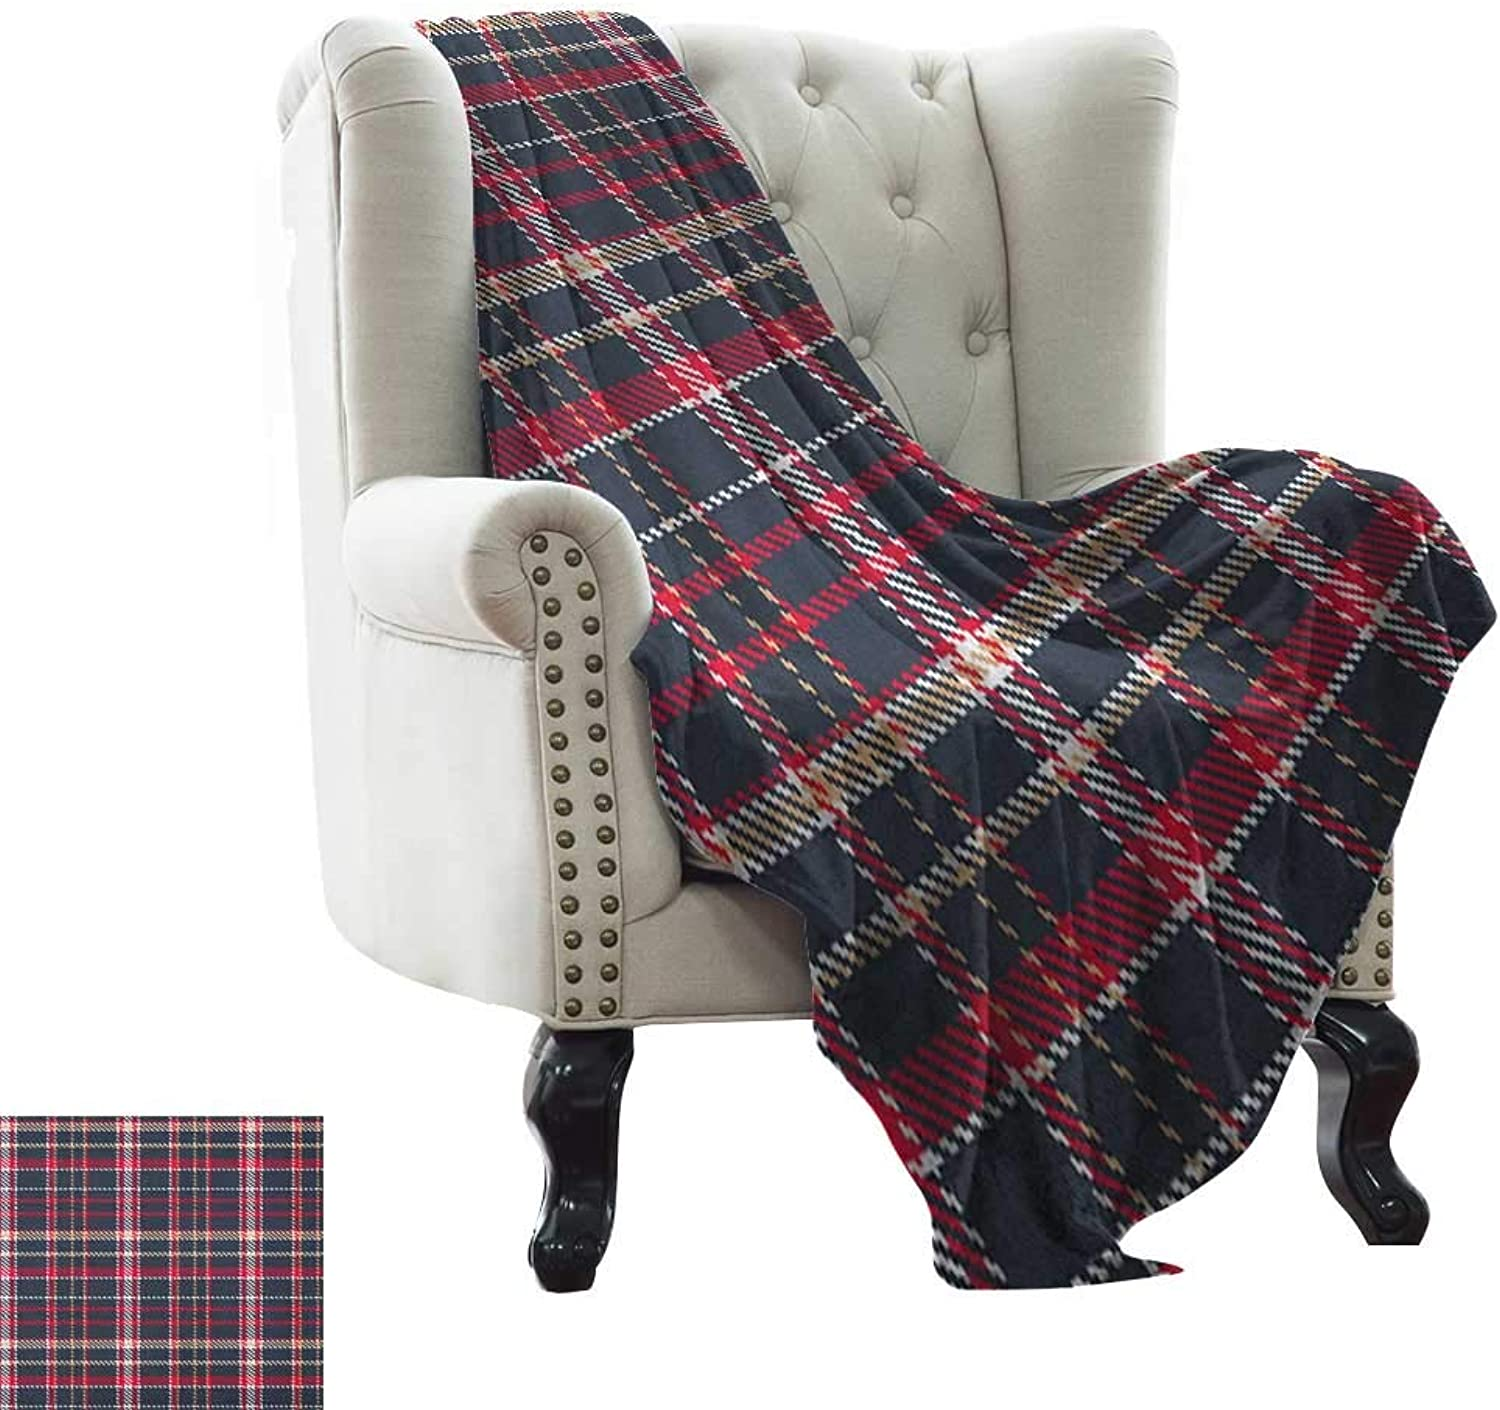 Weighted Blanket for Kids Plaid,Classical Pattern with Traditional Origins Irish Country Retro Style Simple Checkered, Multicolor for Bed & Couch Sofa Easy Care 35 x60